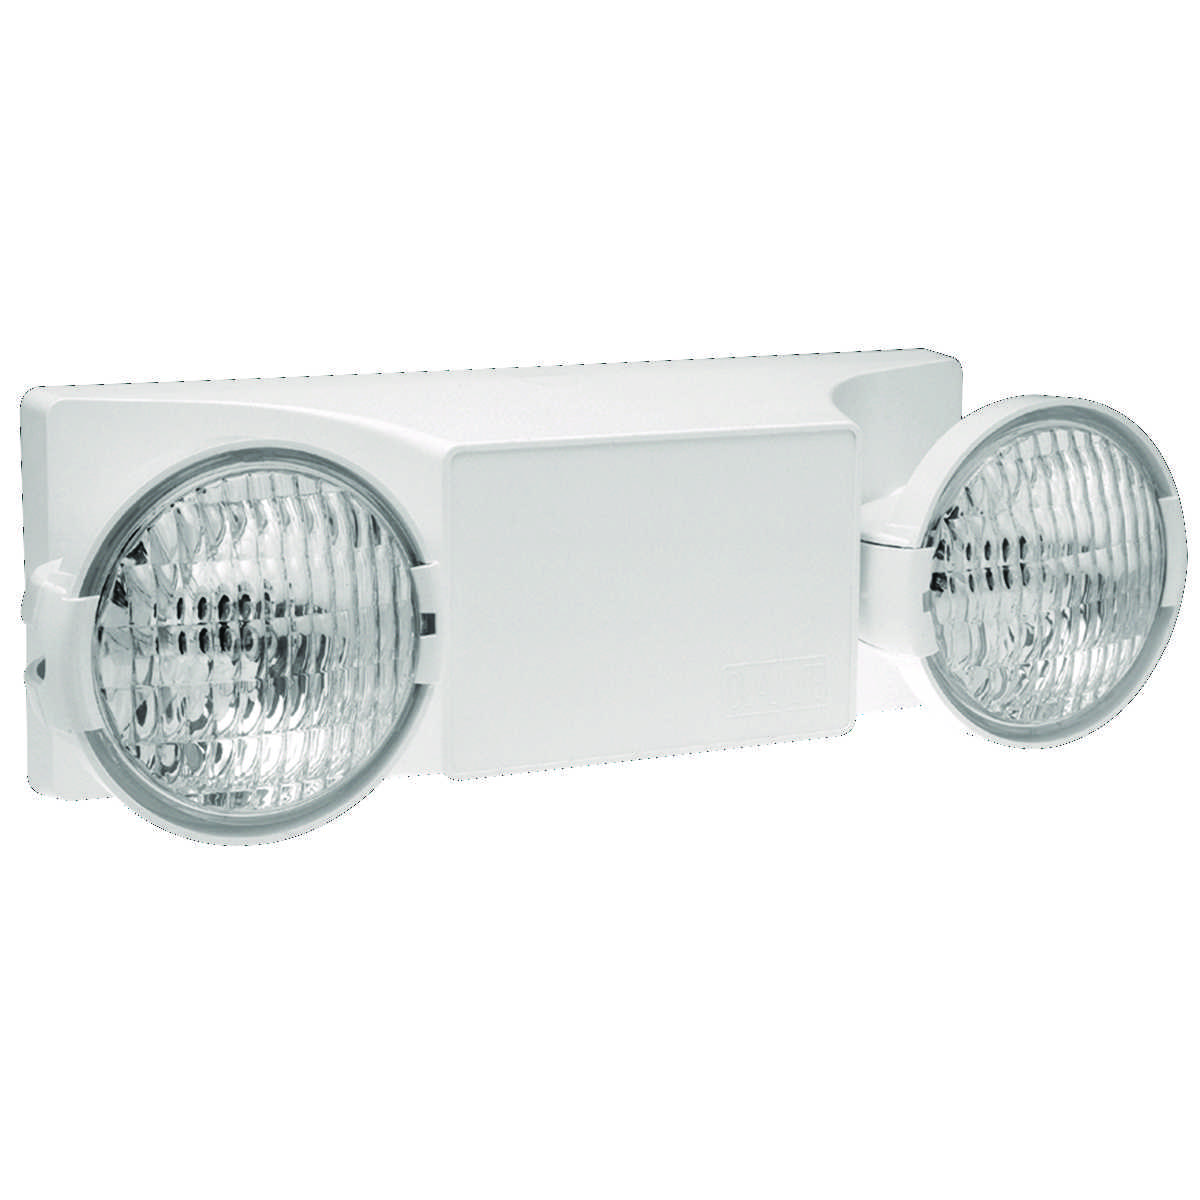 EZ-2 DUAL-LITE 2-HEADED EMERG LIGHT